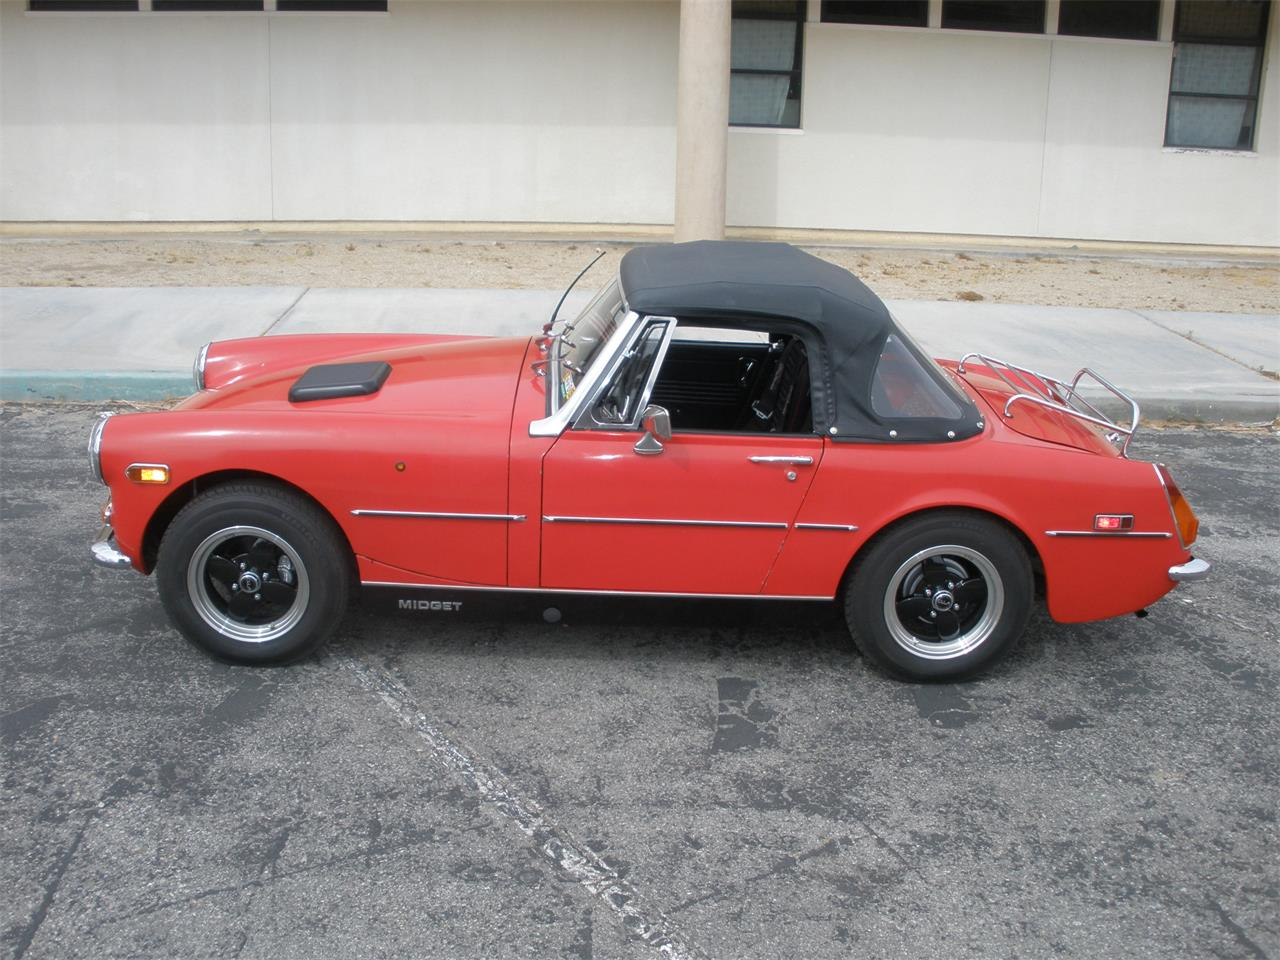 Large Picture of 1974 Midget located in California - $10,000.00 - KEGM